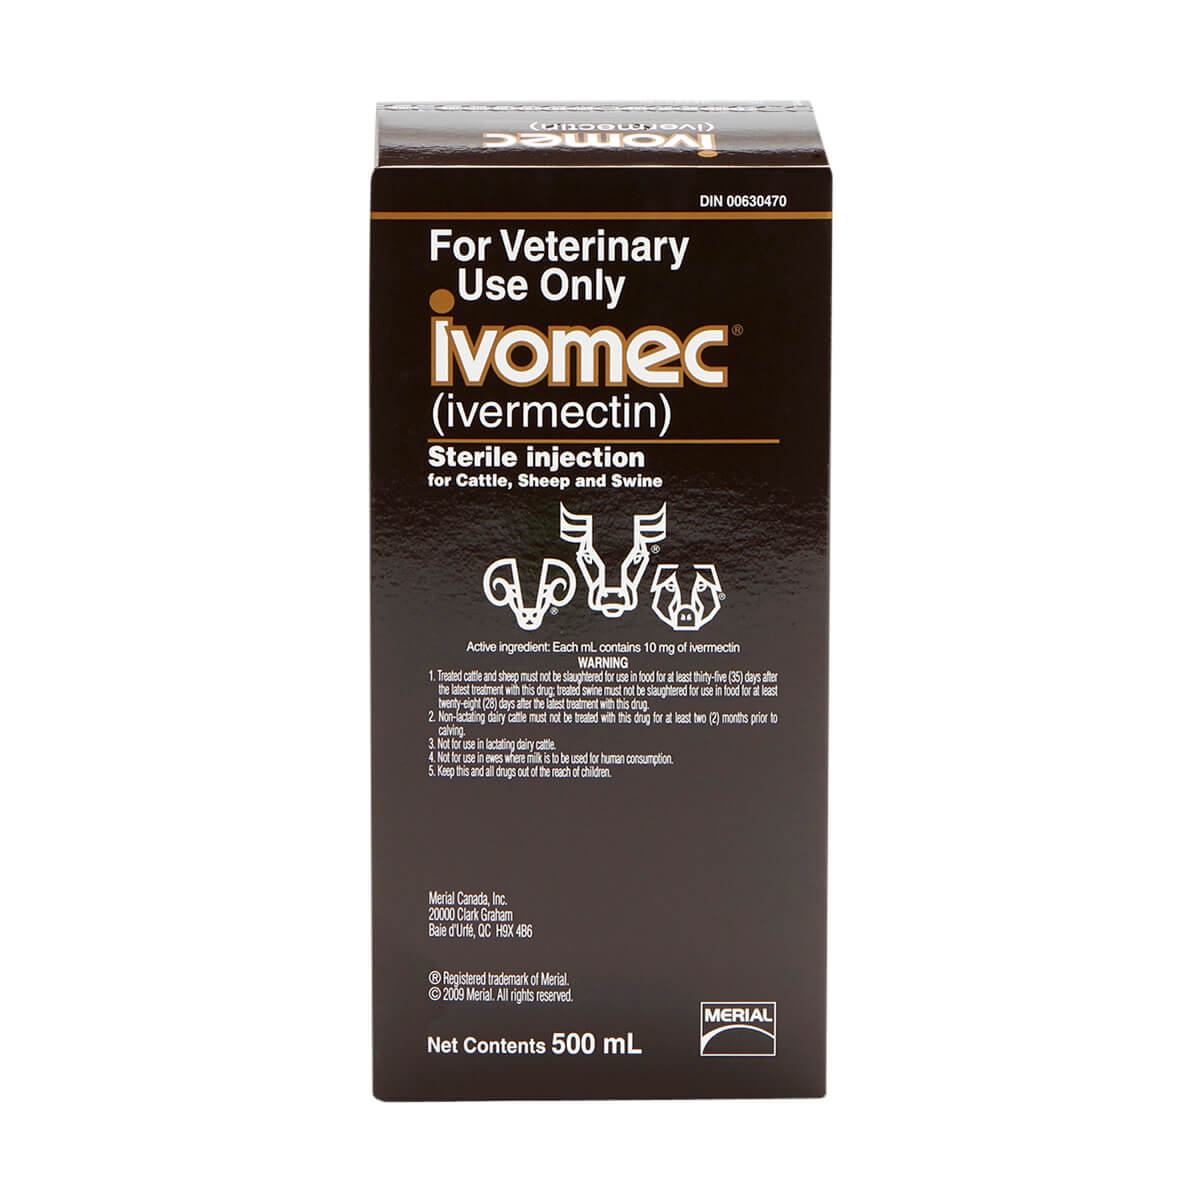 Ivomec® Injection for Cattle, Sheep and Swine 500 mL